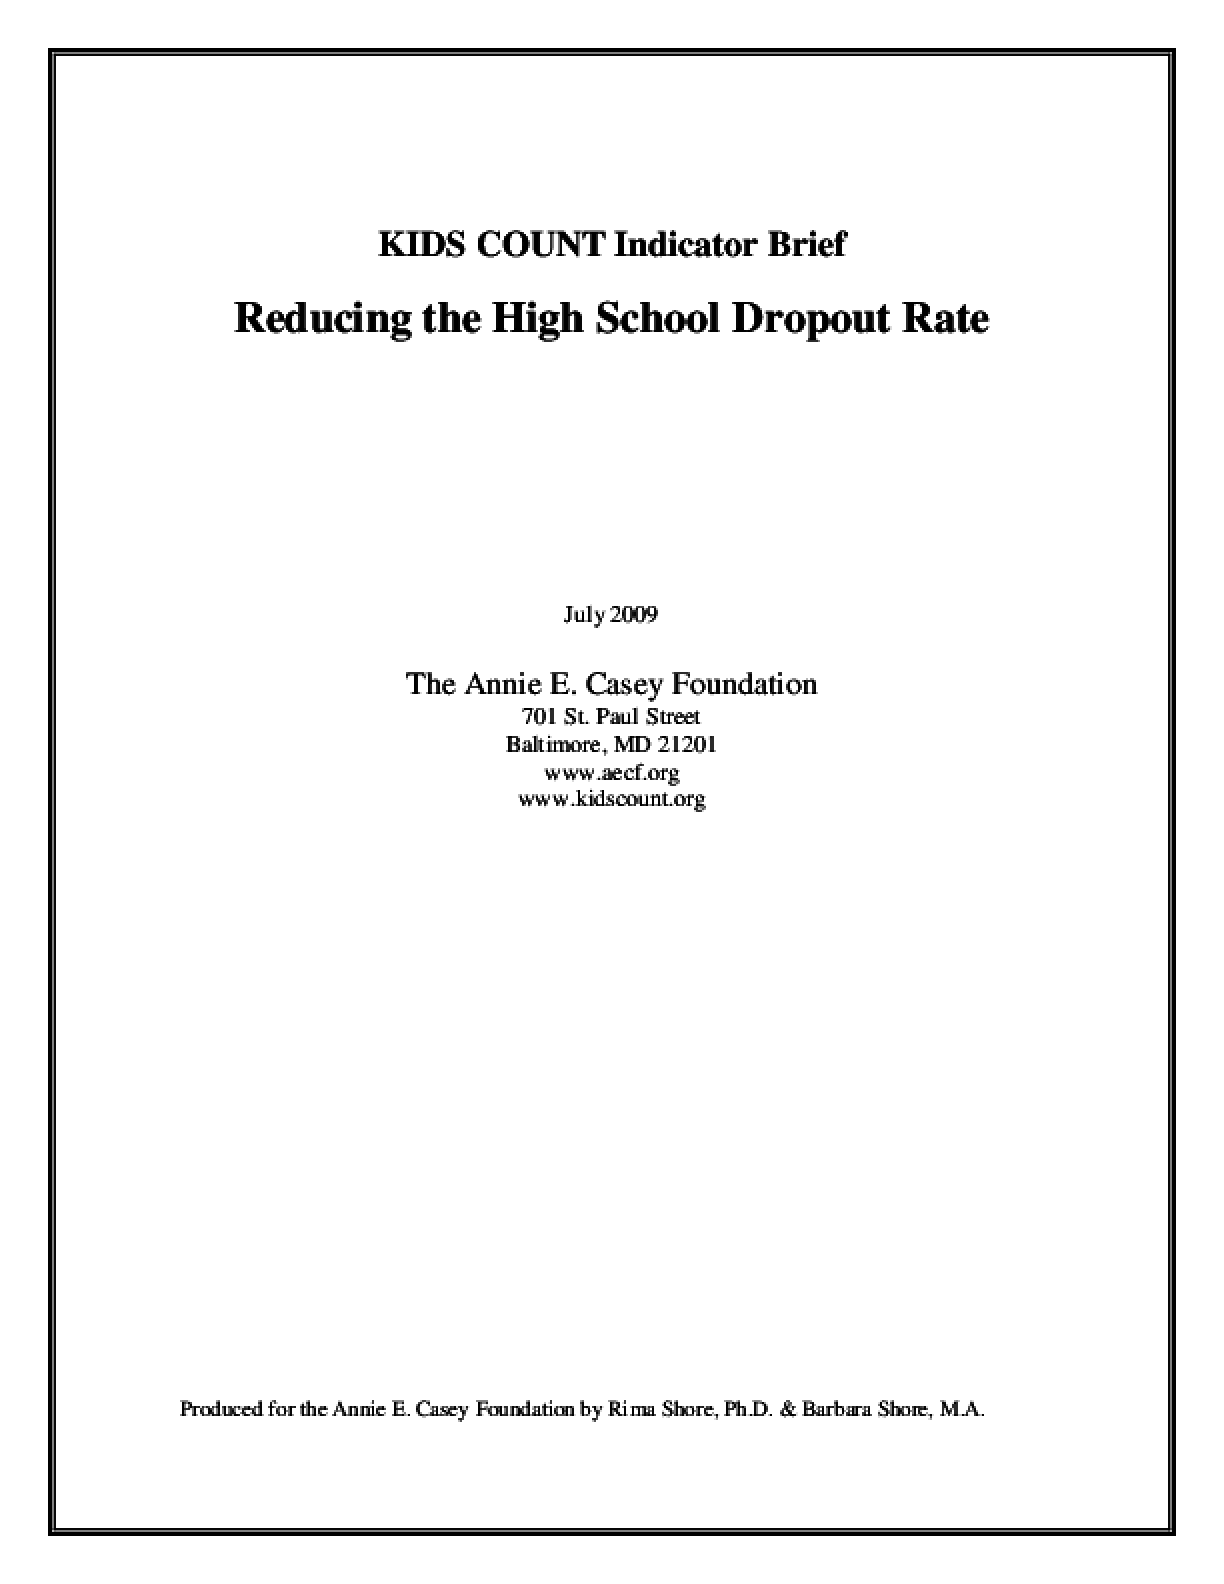 KIDS COUNT Indicator Brief: Reducing the High School Dropout Rate